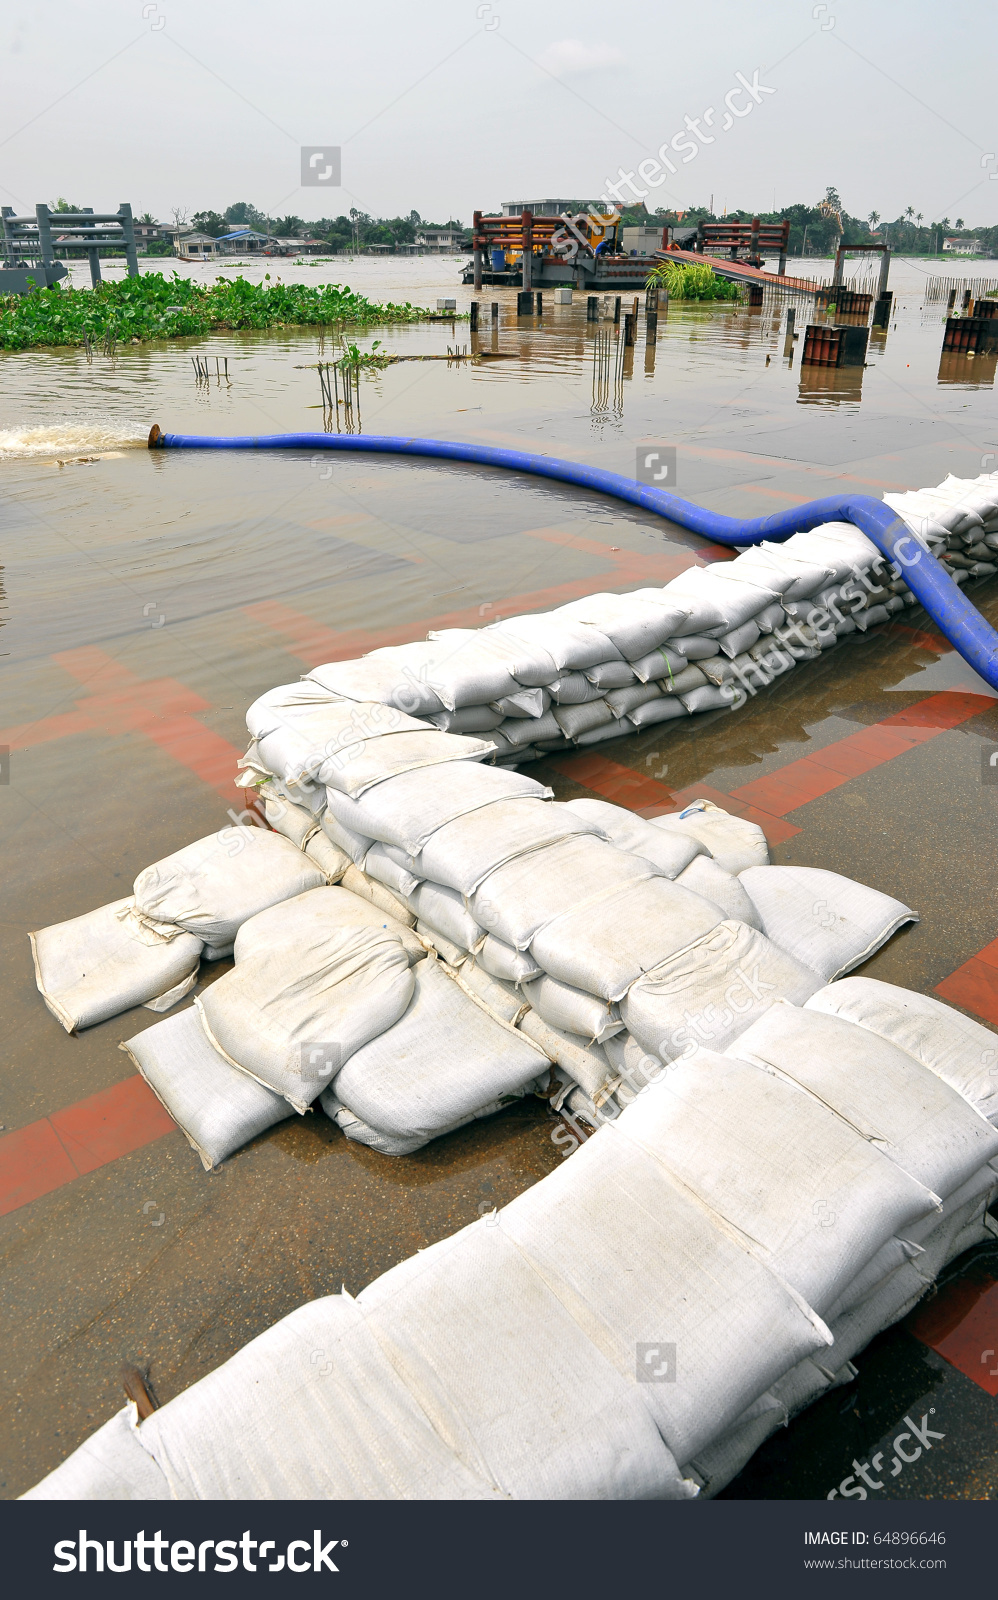 Sand Bags Help Keep Flood Waters Out Of A Town Process Flood.